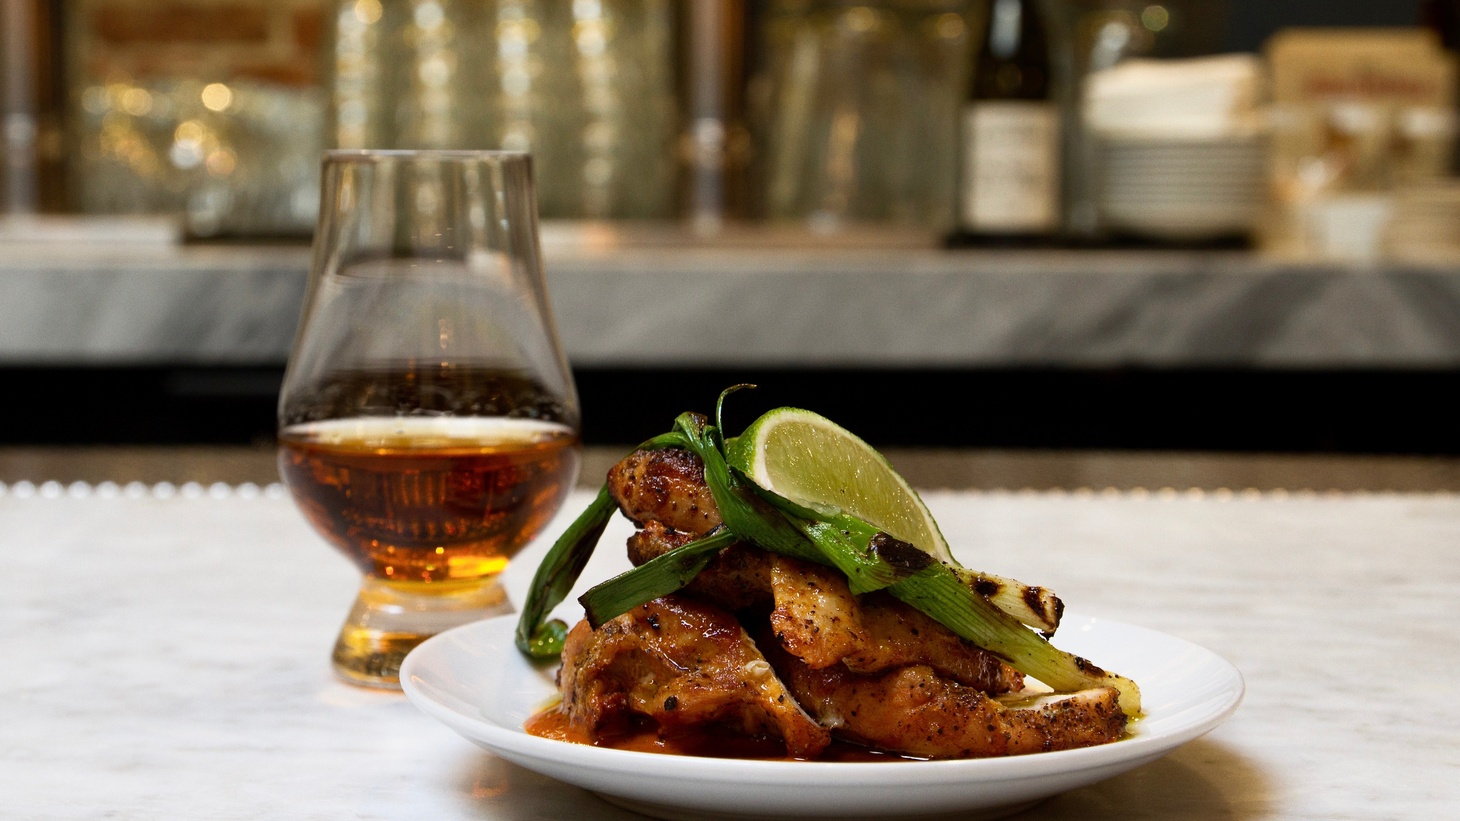 """LA Times food critic Jonathan Gold says nothing goes better with the """"extraordinarily good bourbon collection"""" at the Everson Royce Bar than Chef Matt Molina's hot buttermilk biscuits."""